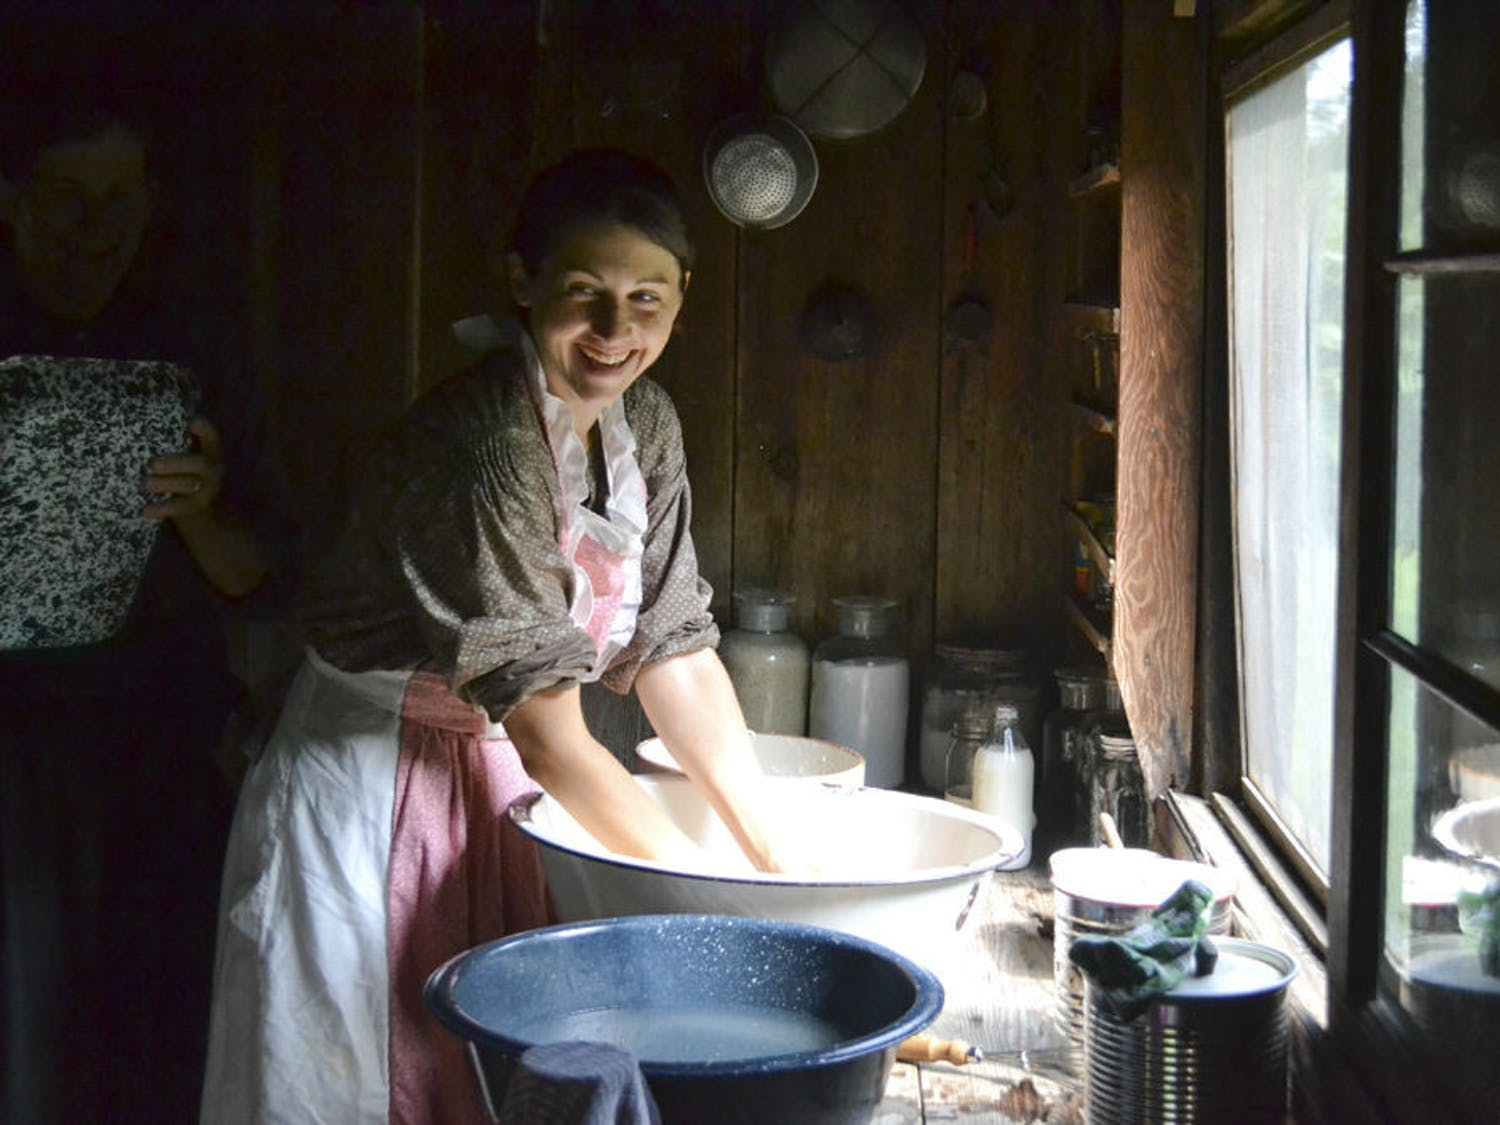 Val Leitner, 36, washes off homemade biscuit batter off her hands in a water bowl during the living history Reconstruction era event at Dudley Farm Historic State Park on Sept. 4, 2015. Leitner was participating as one of the living historians and cooked food for other volunteers on a wood stove.